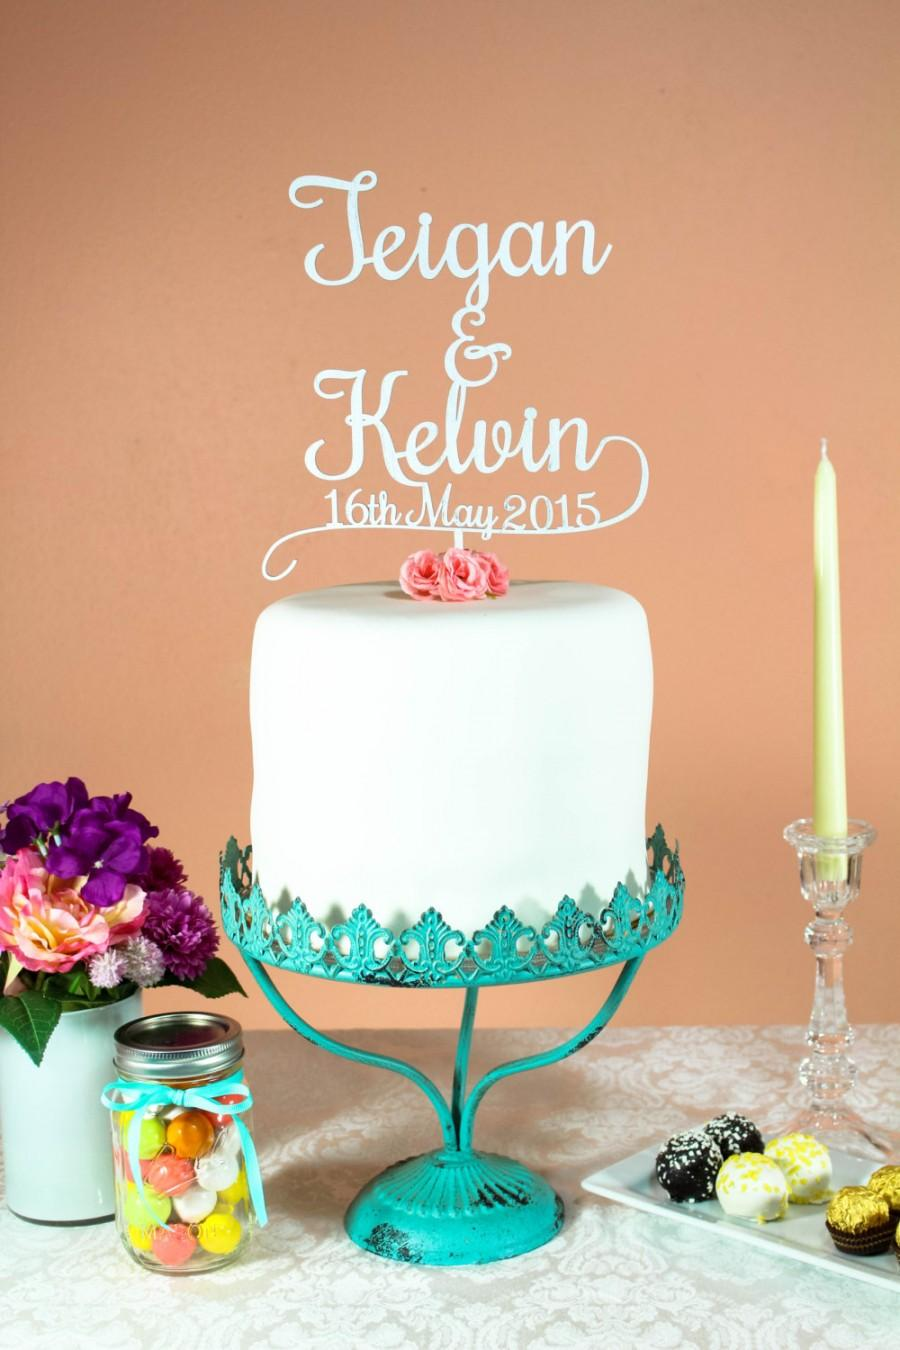 Mariage - Personalized Custom Mr & Mrs Wedding Cake Topper with Last Name and Wedding Date